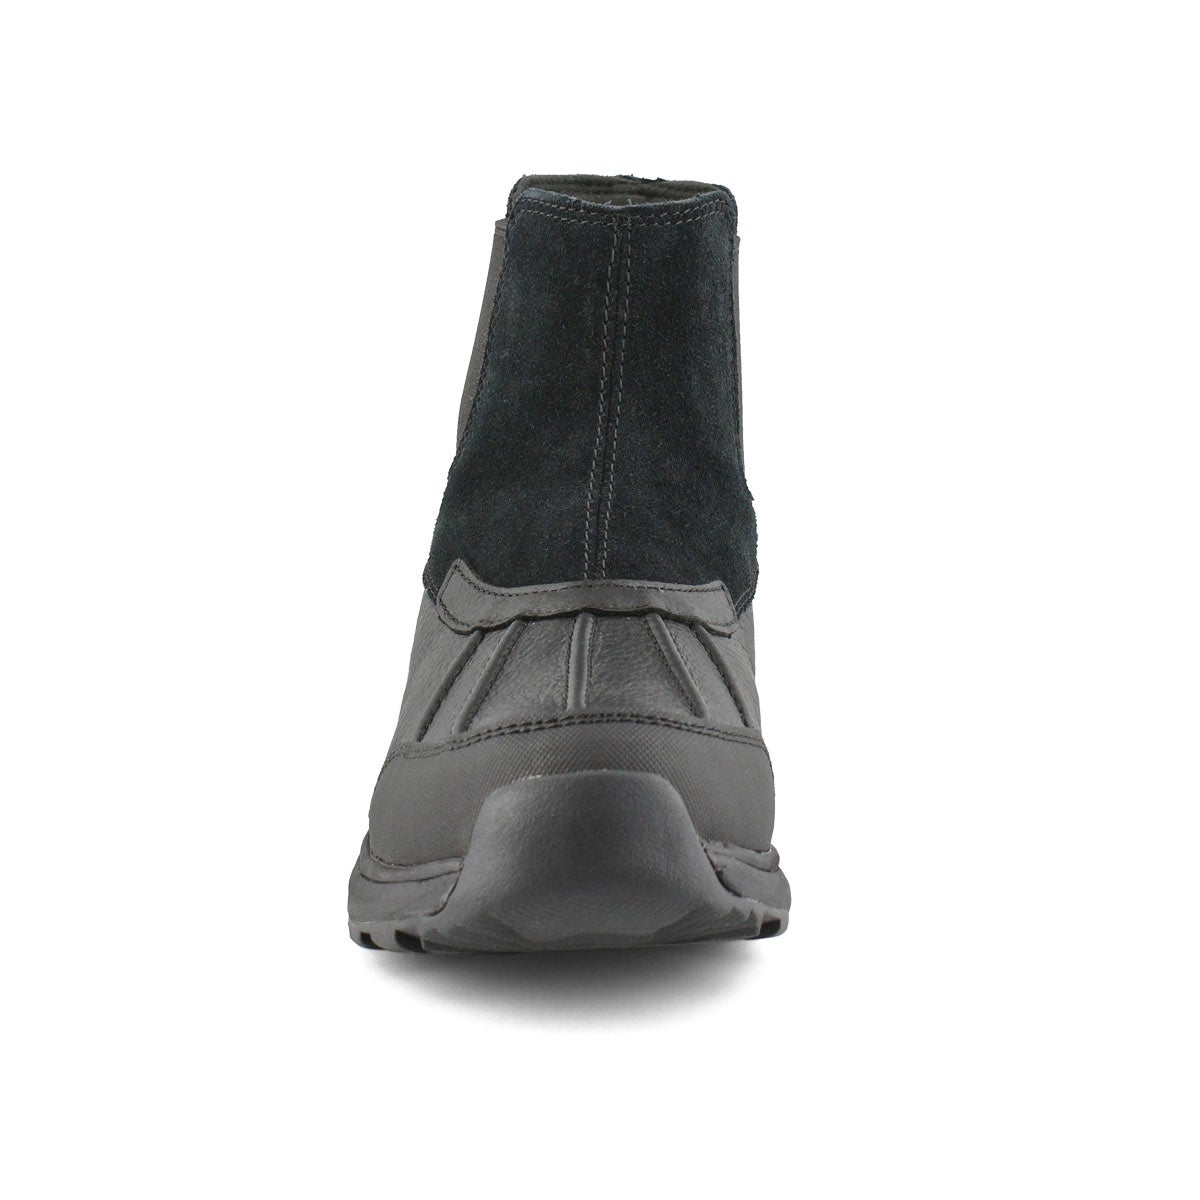 Lds Adirondack III Chelsea blk wntr boot